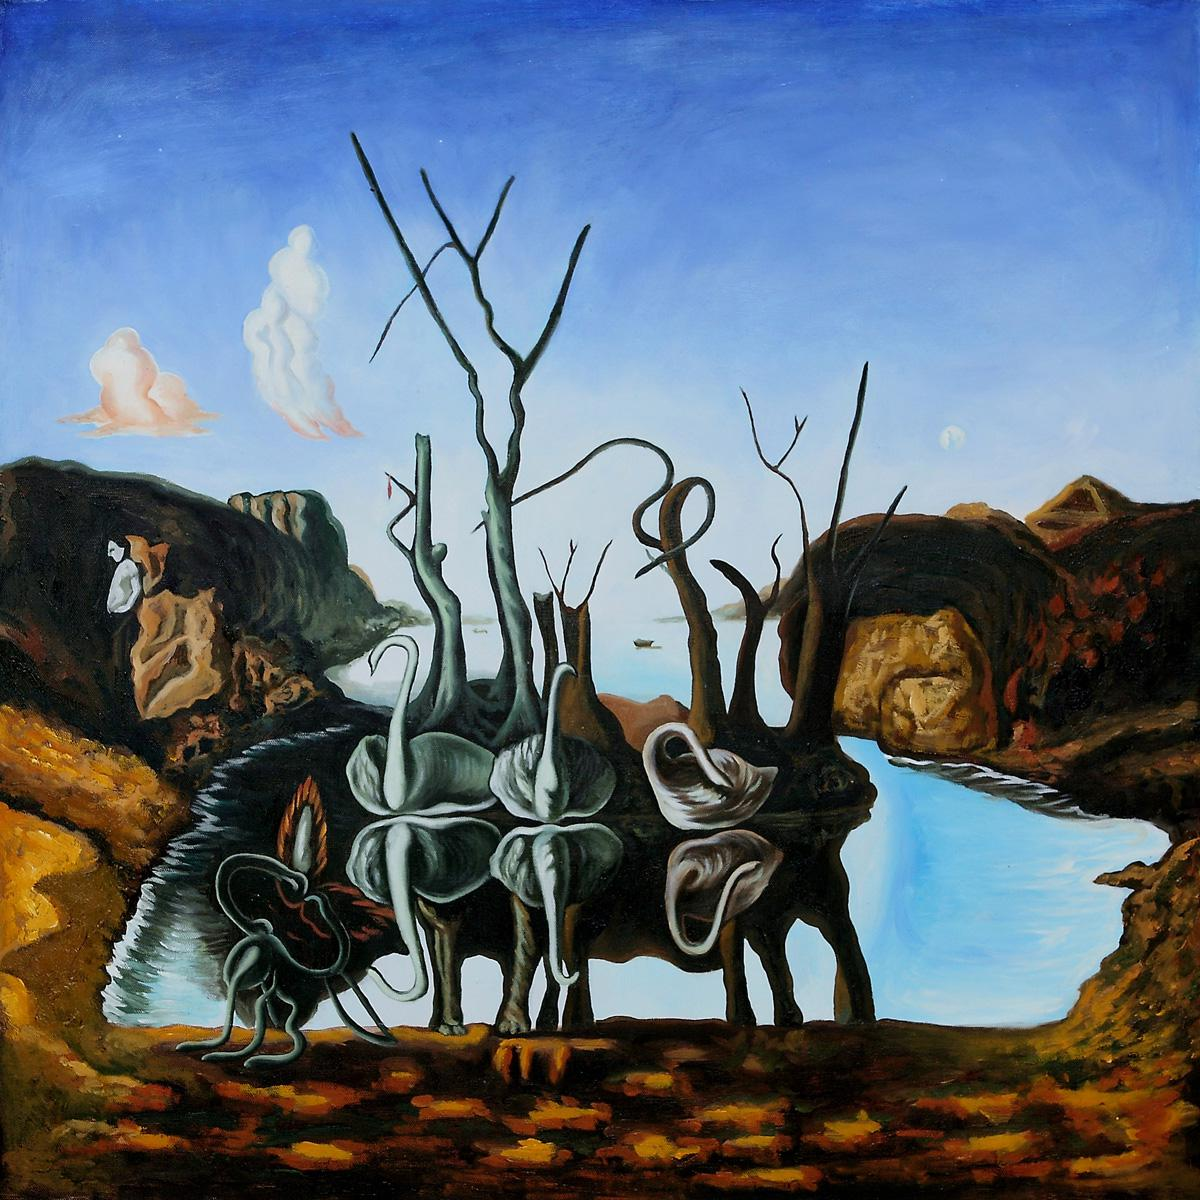 Famous Dali Paintings List